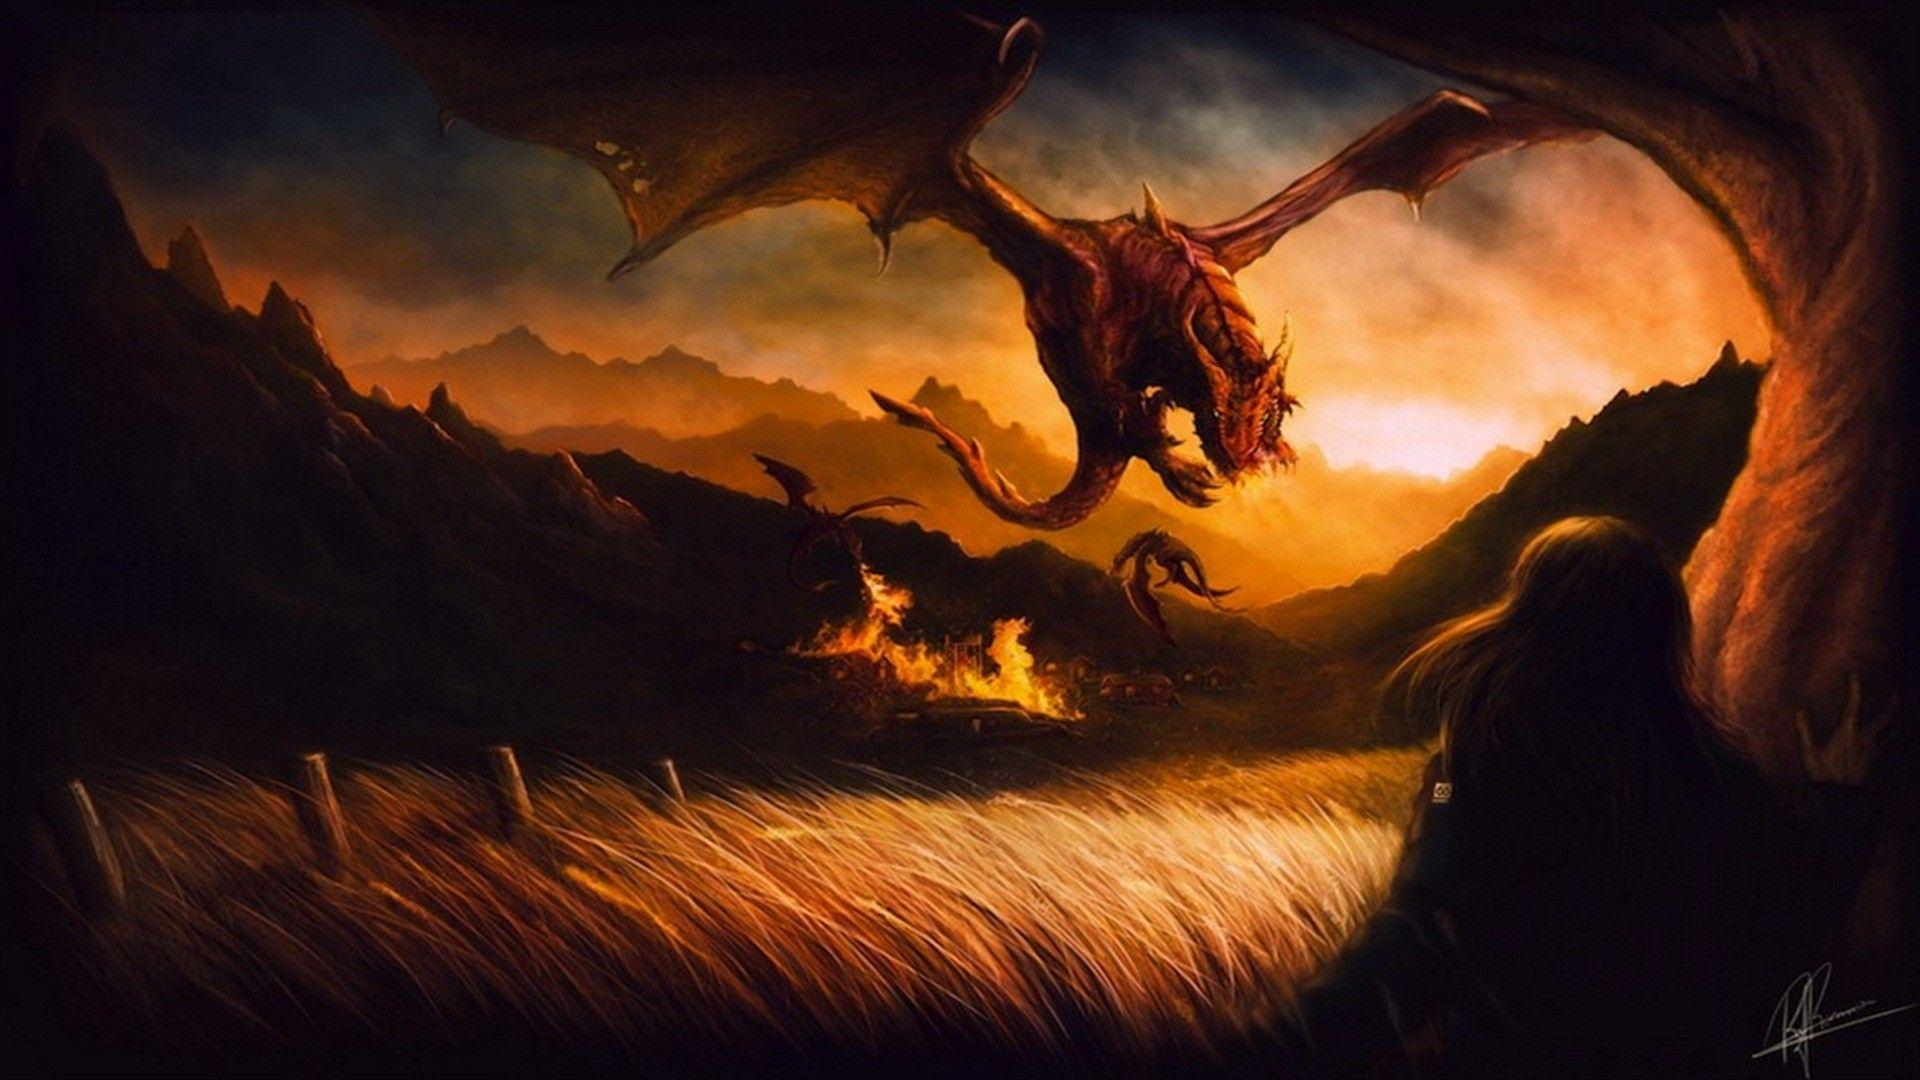 Fantasy Dragon Wallpapers - Wallpaper Cave